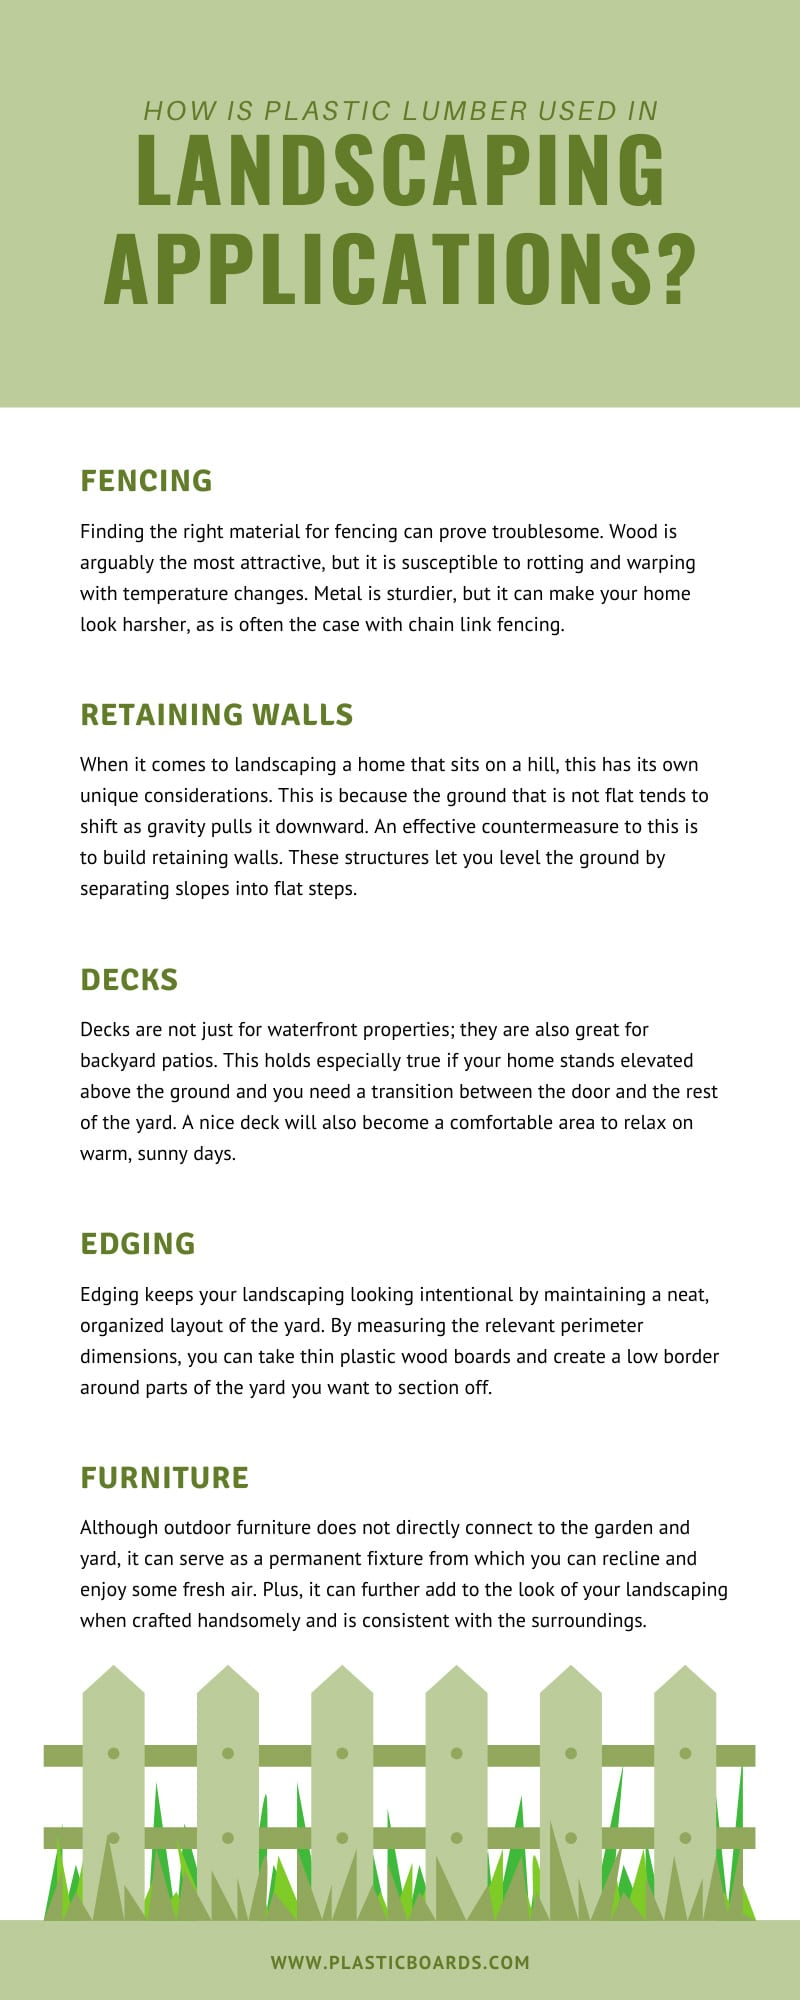 How is Plastic Lumber Used in Landscaping Applications?